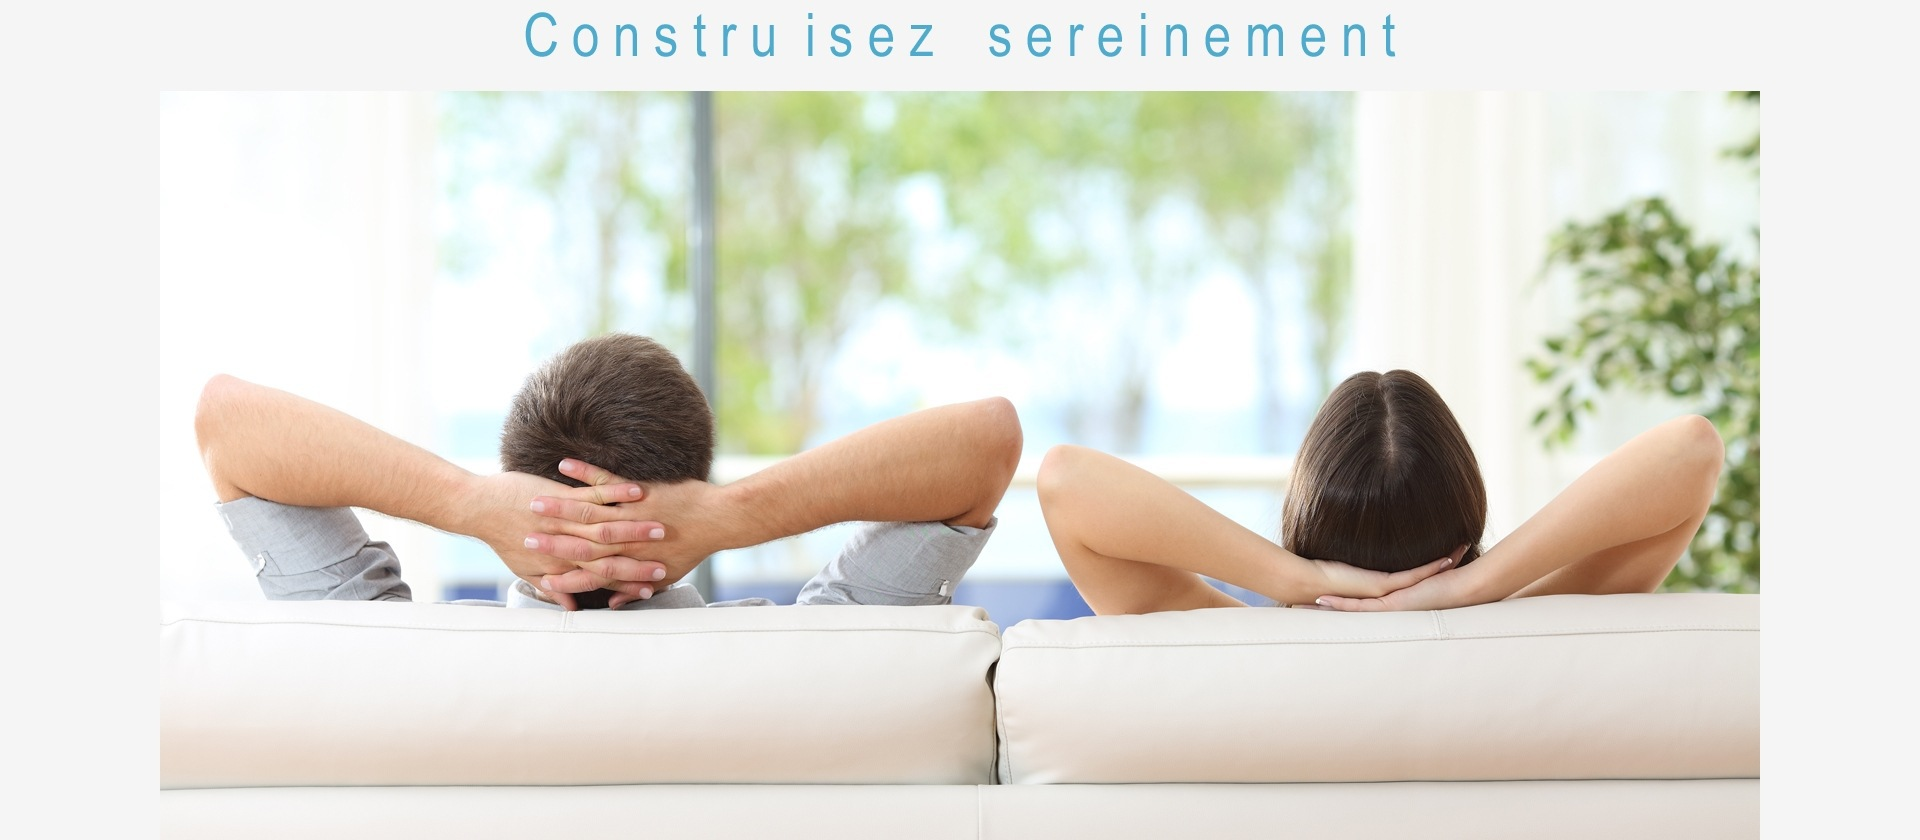 Photo construisez sereinement